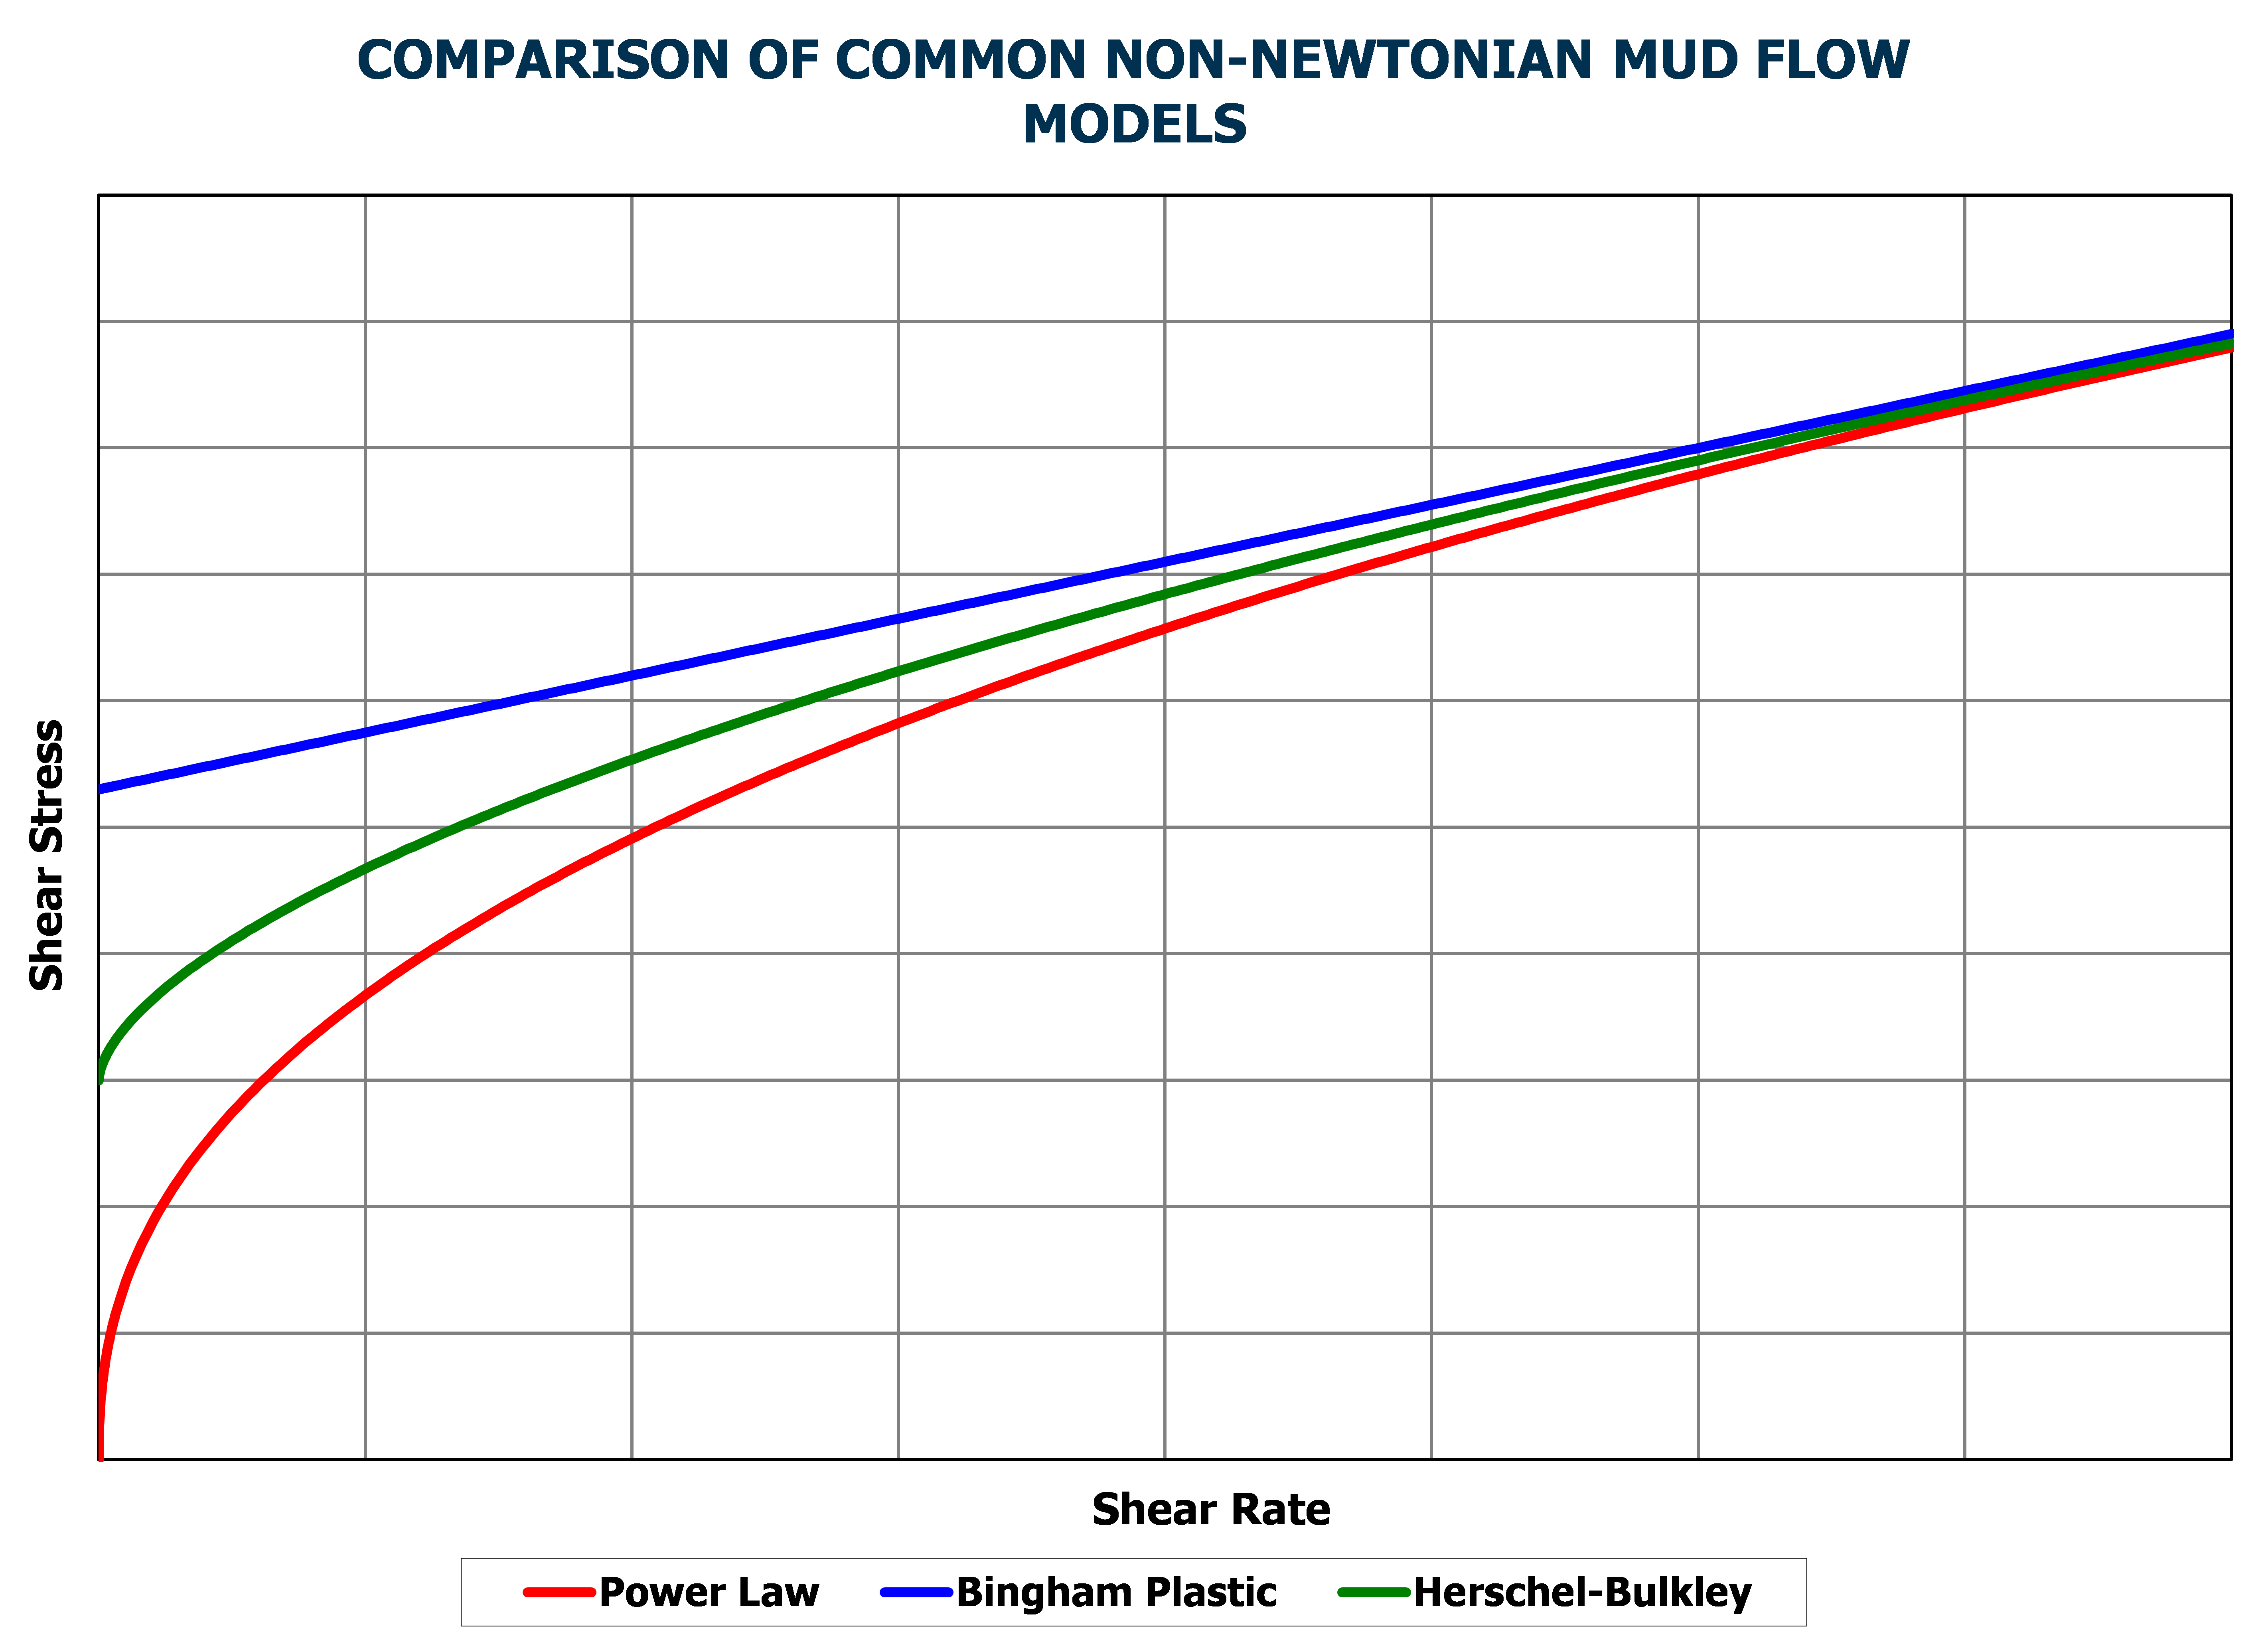 Comparison of 3 Common Mud Flow Models